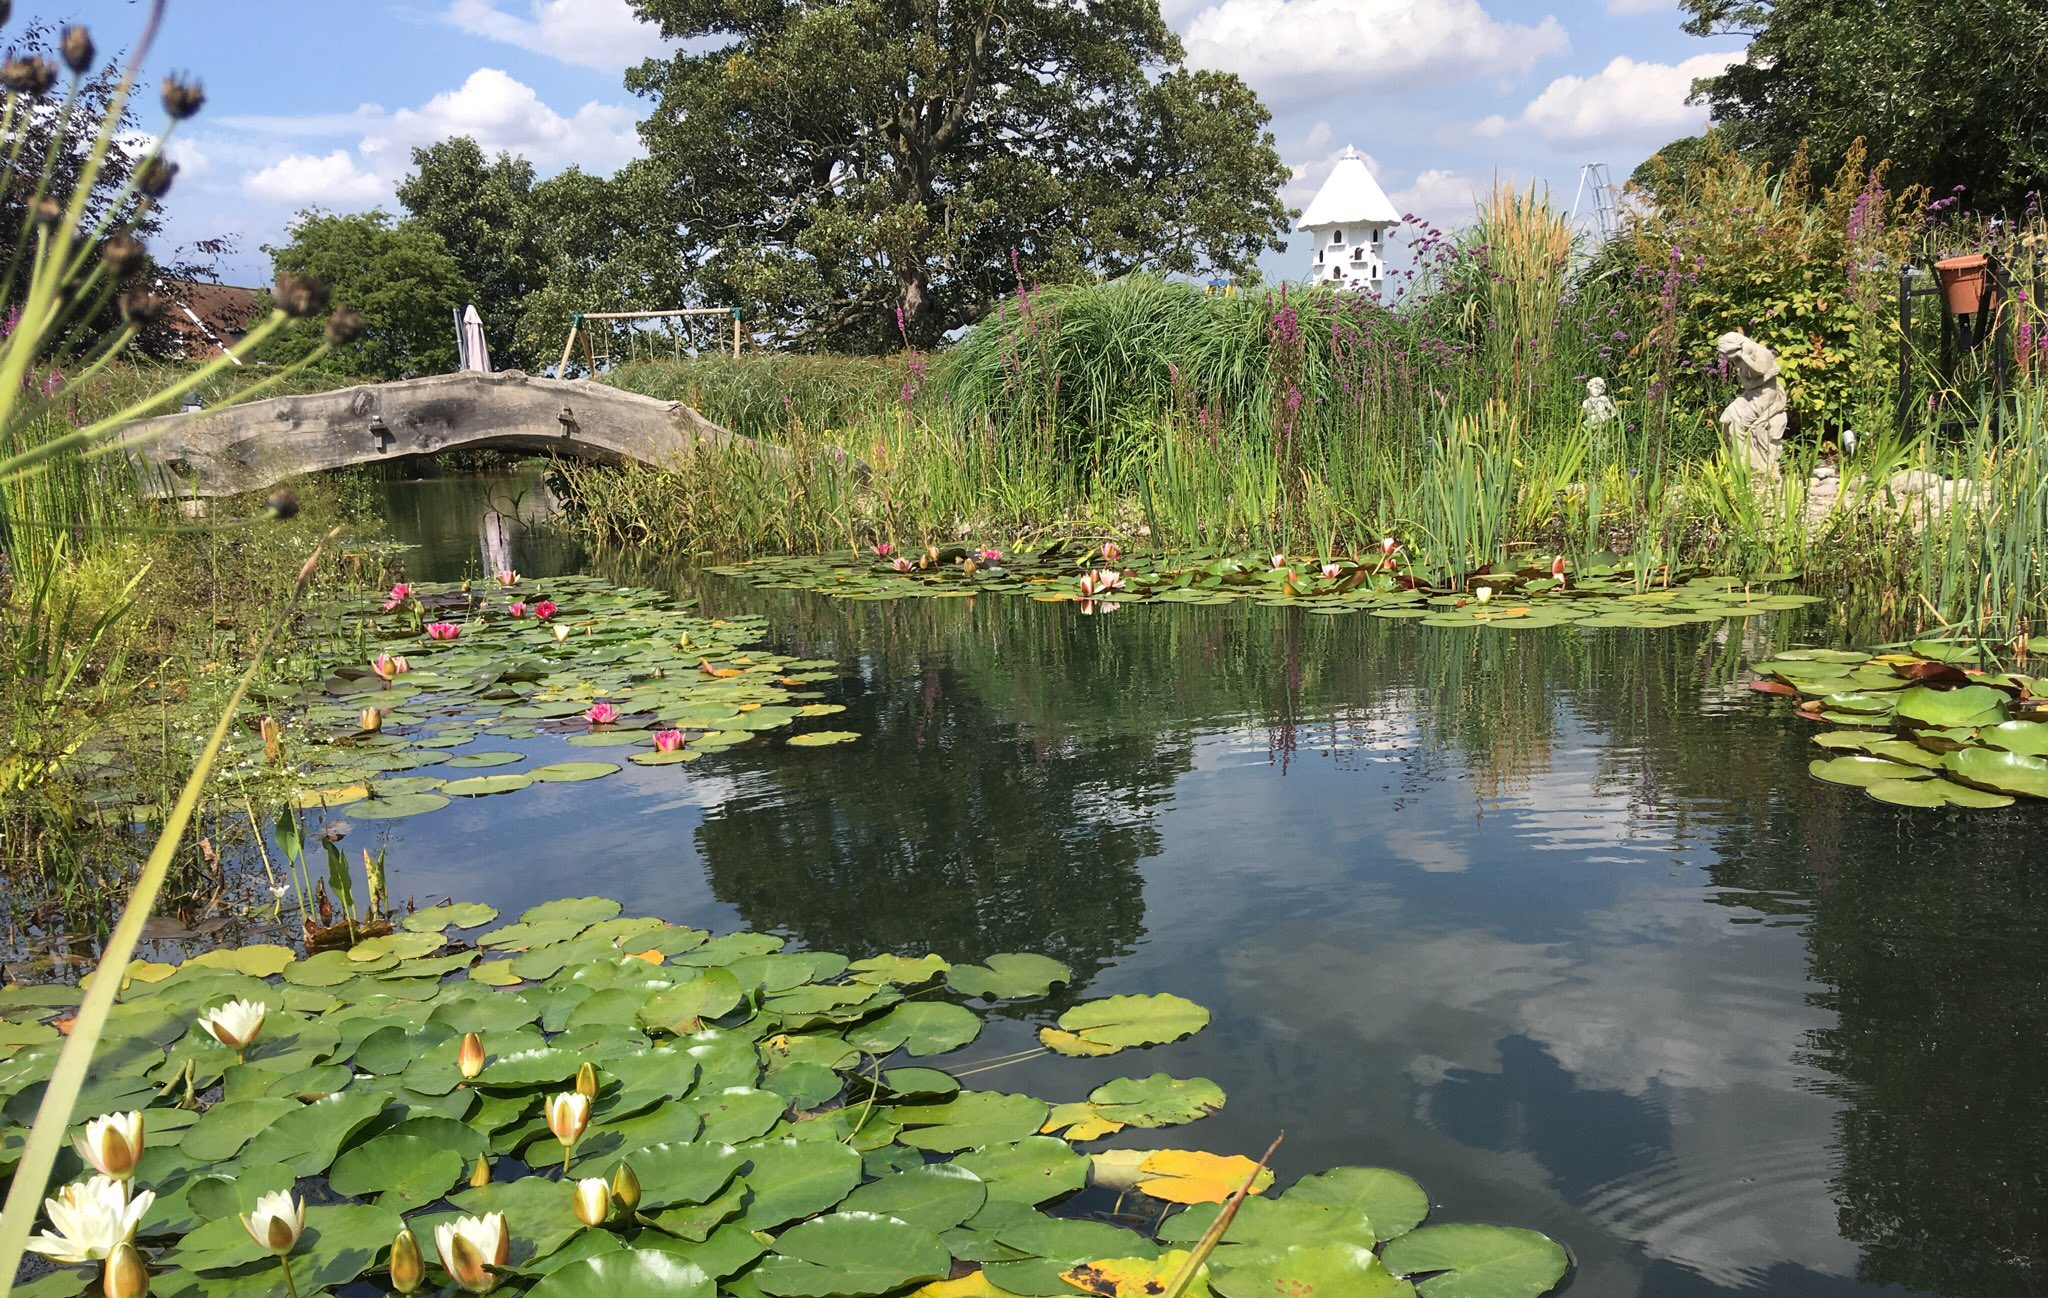 large wildife pond in a country garden